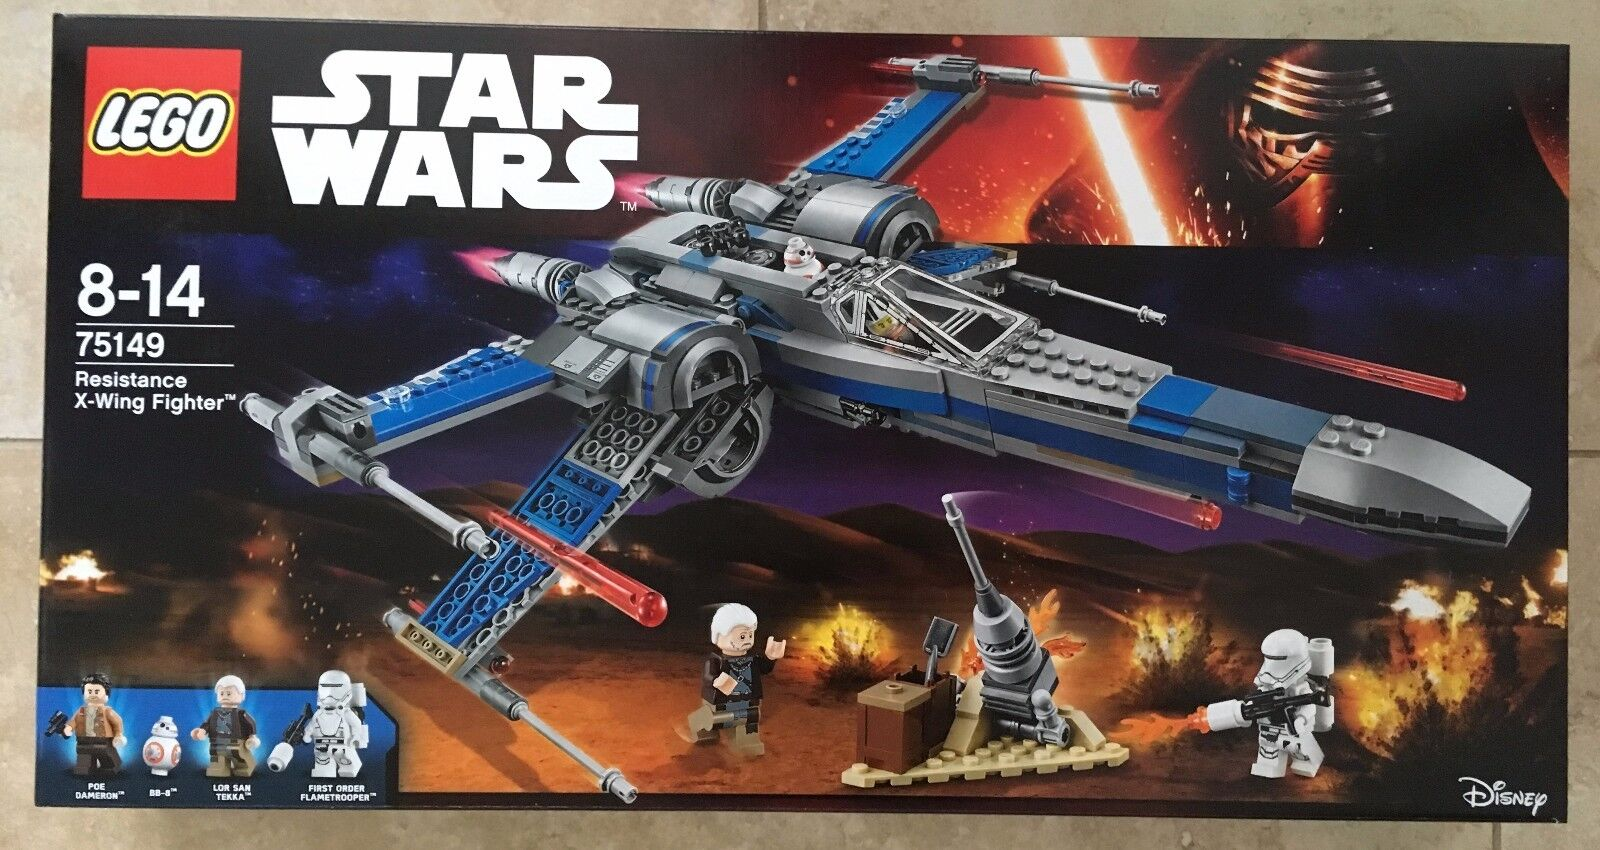 LEGO Star Wars Resistance X-Wing Fighter (75149) New Sealed